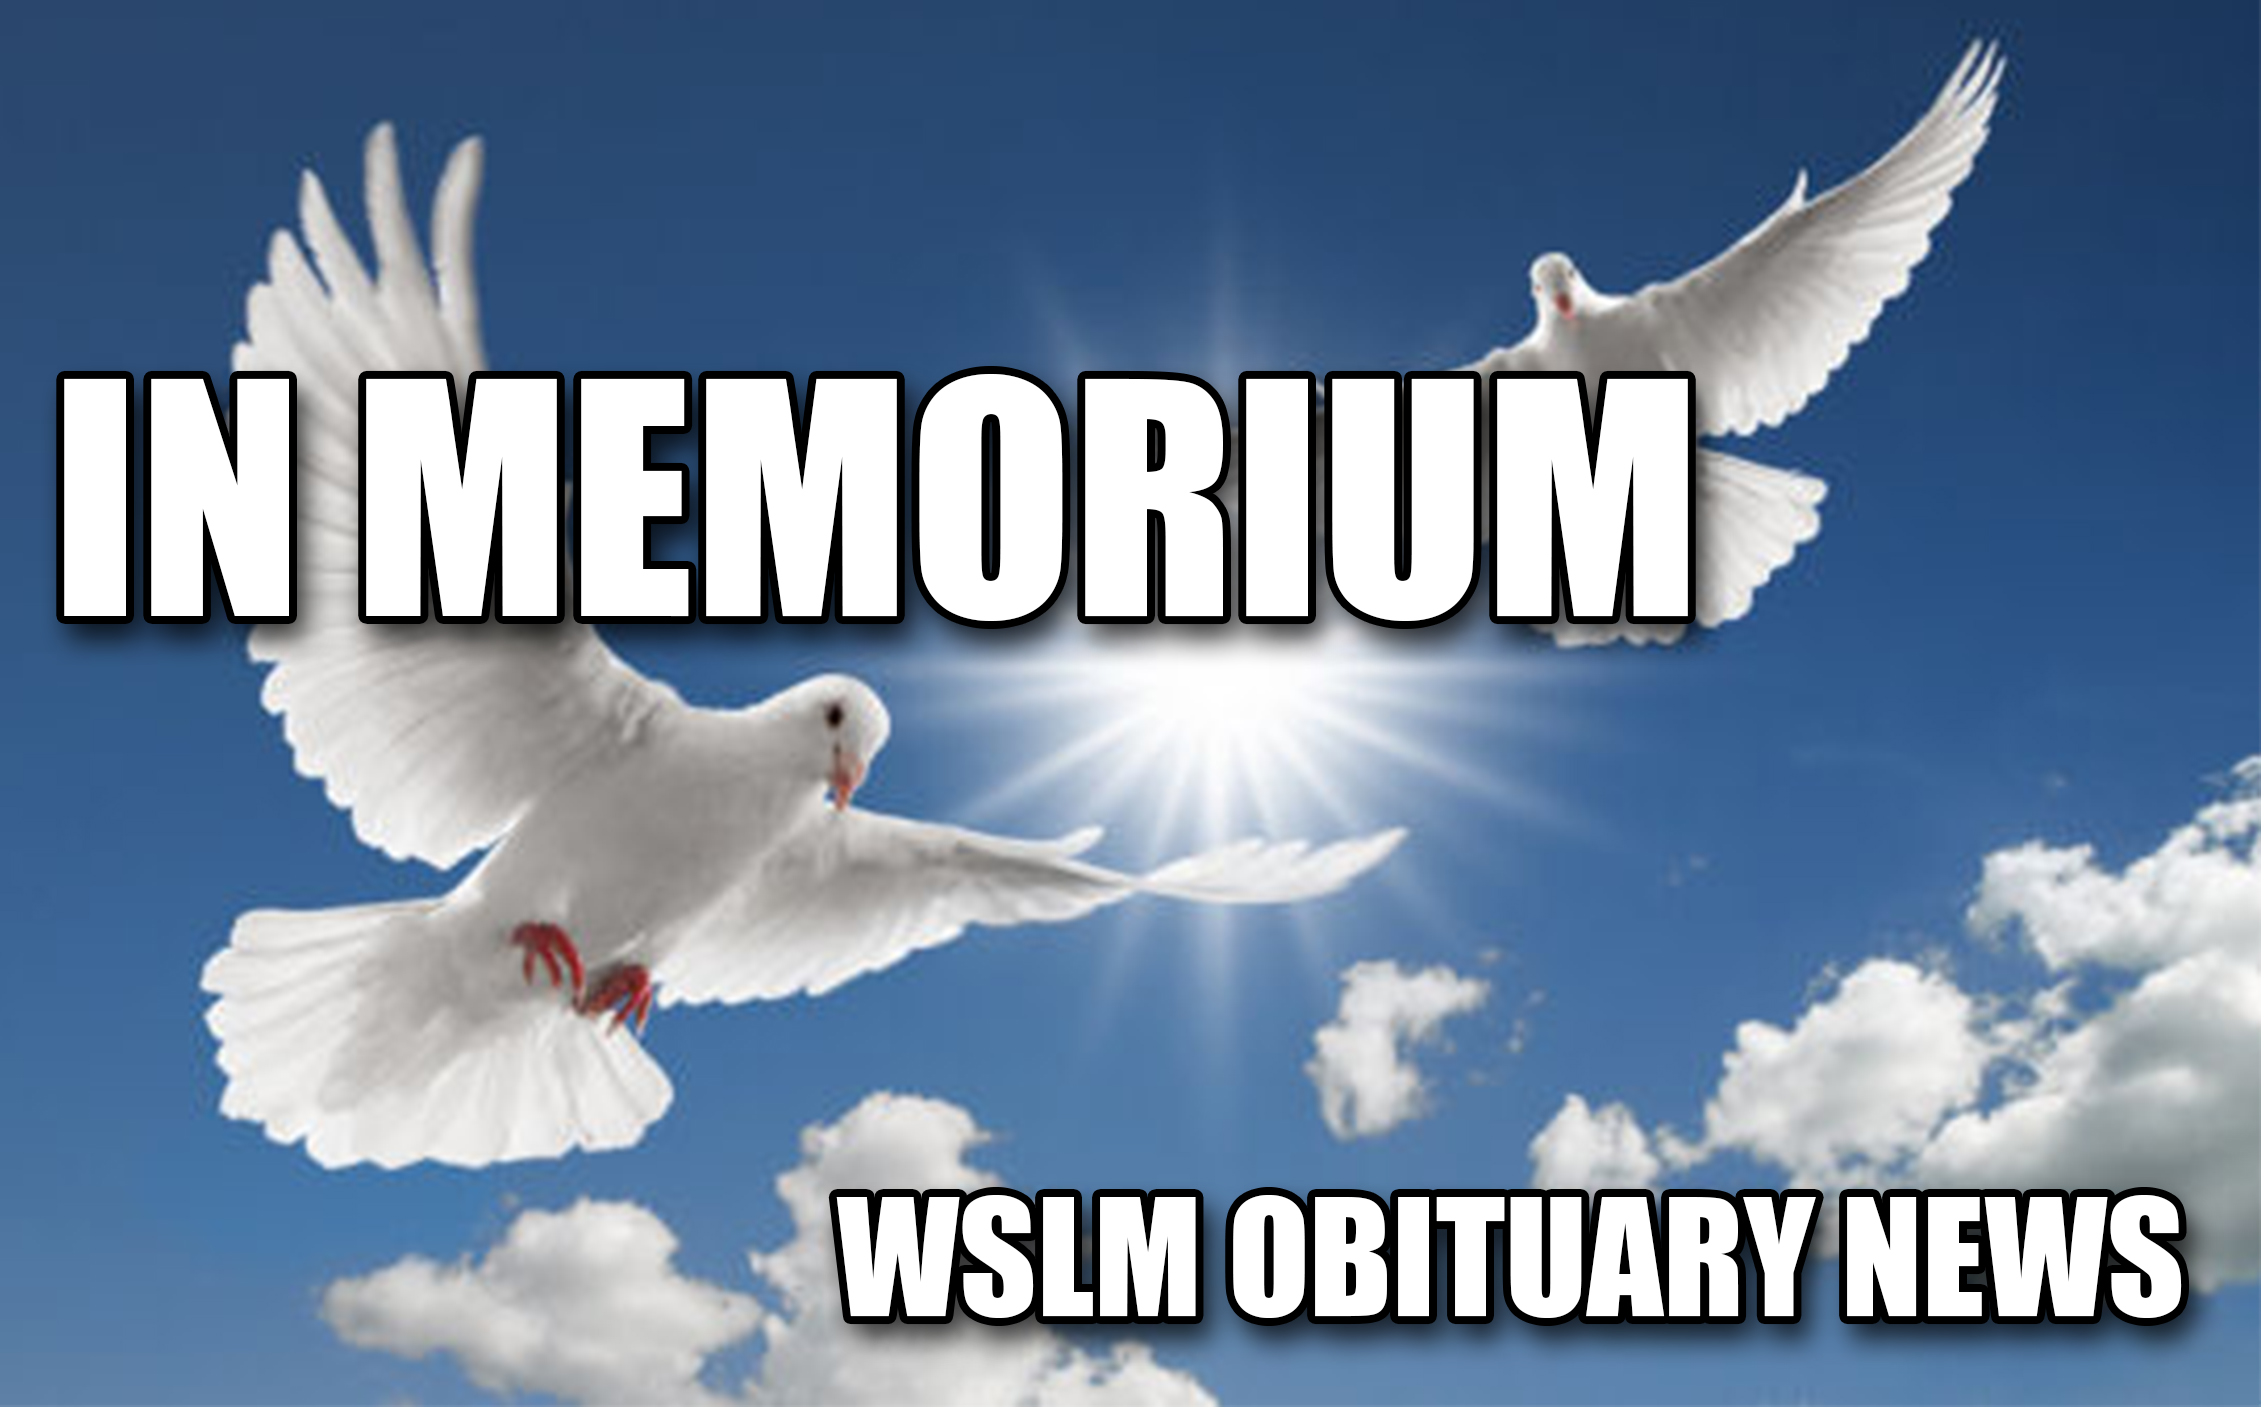 Susan Talbert Age 73 Of Live Oak Texas Wslm Radio